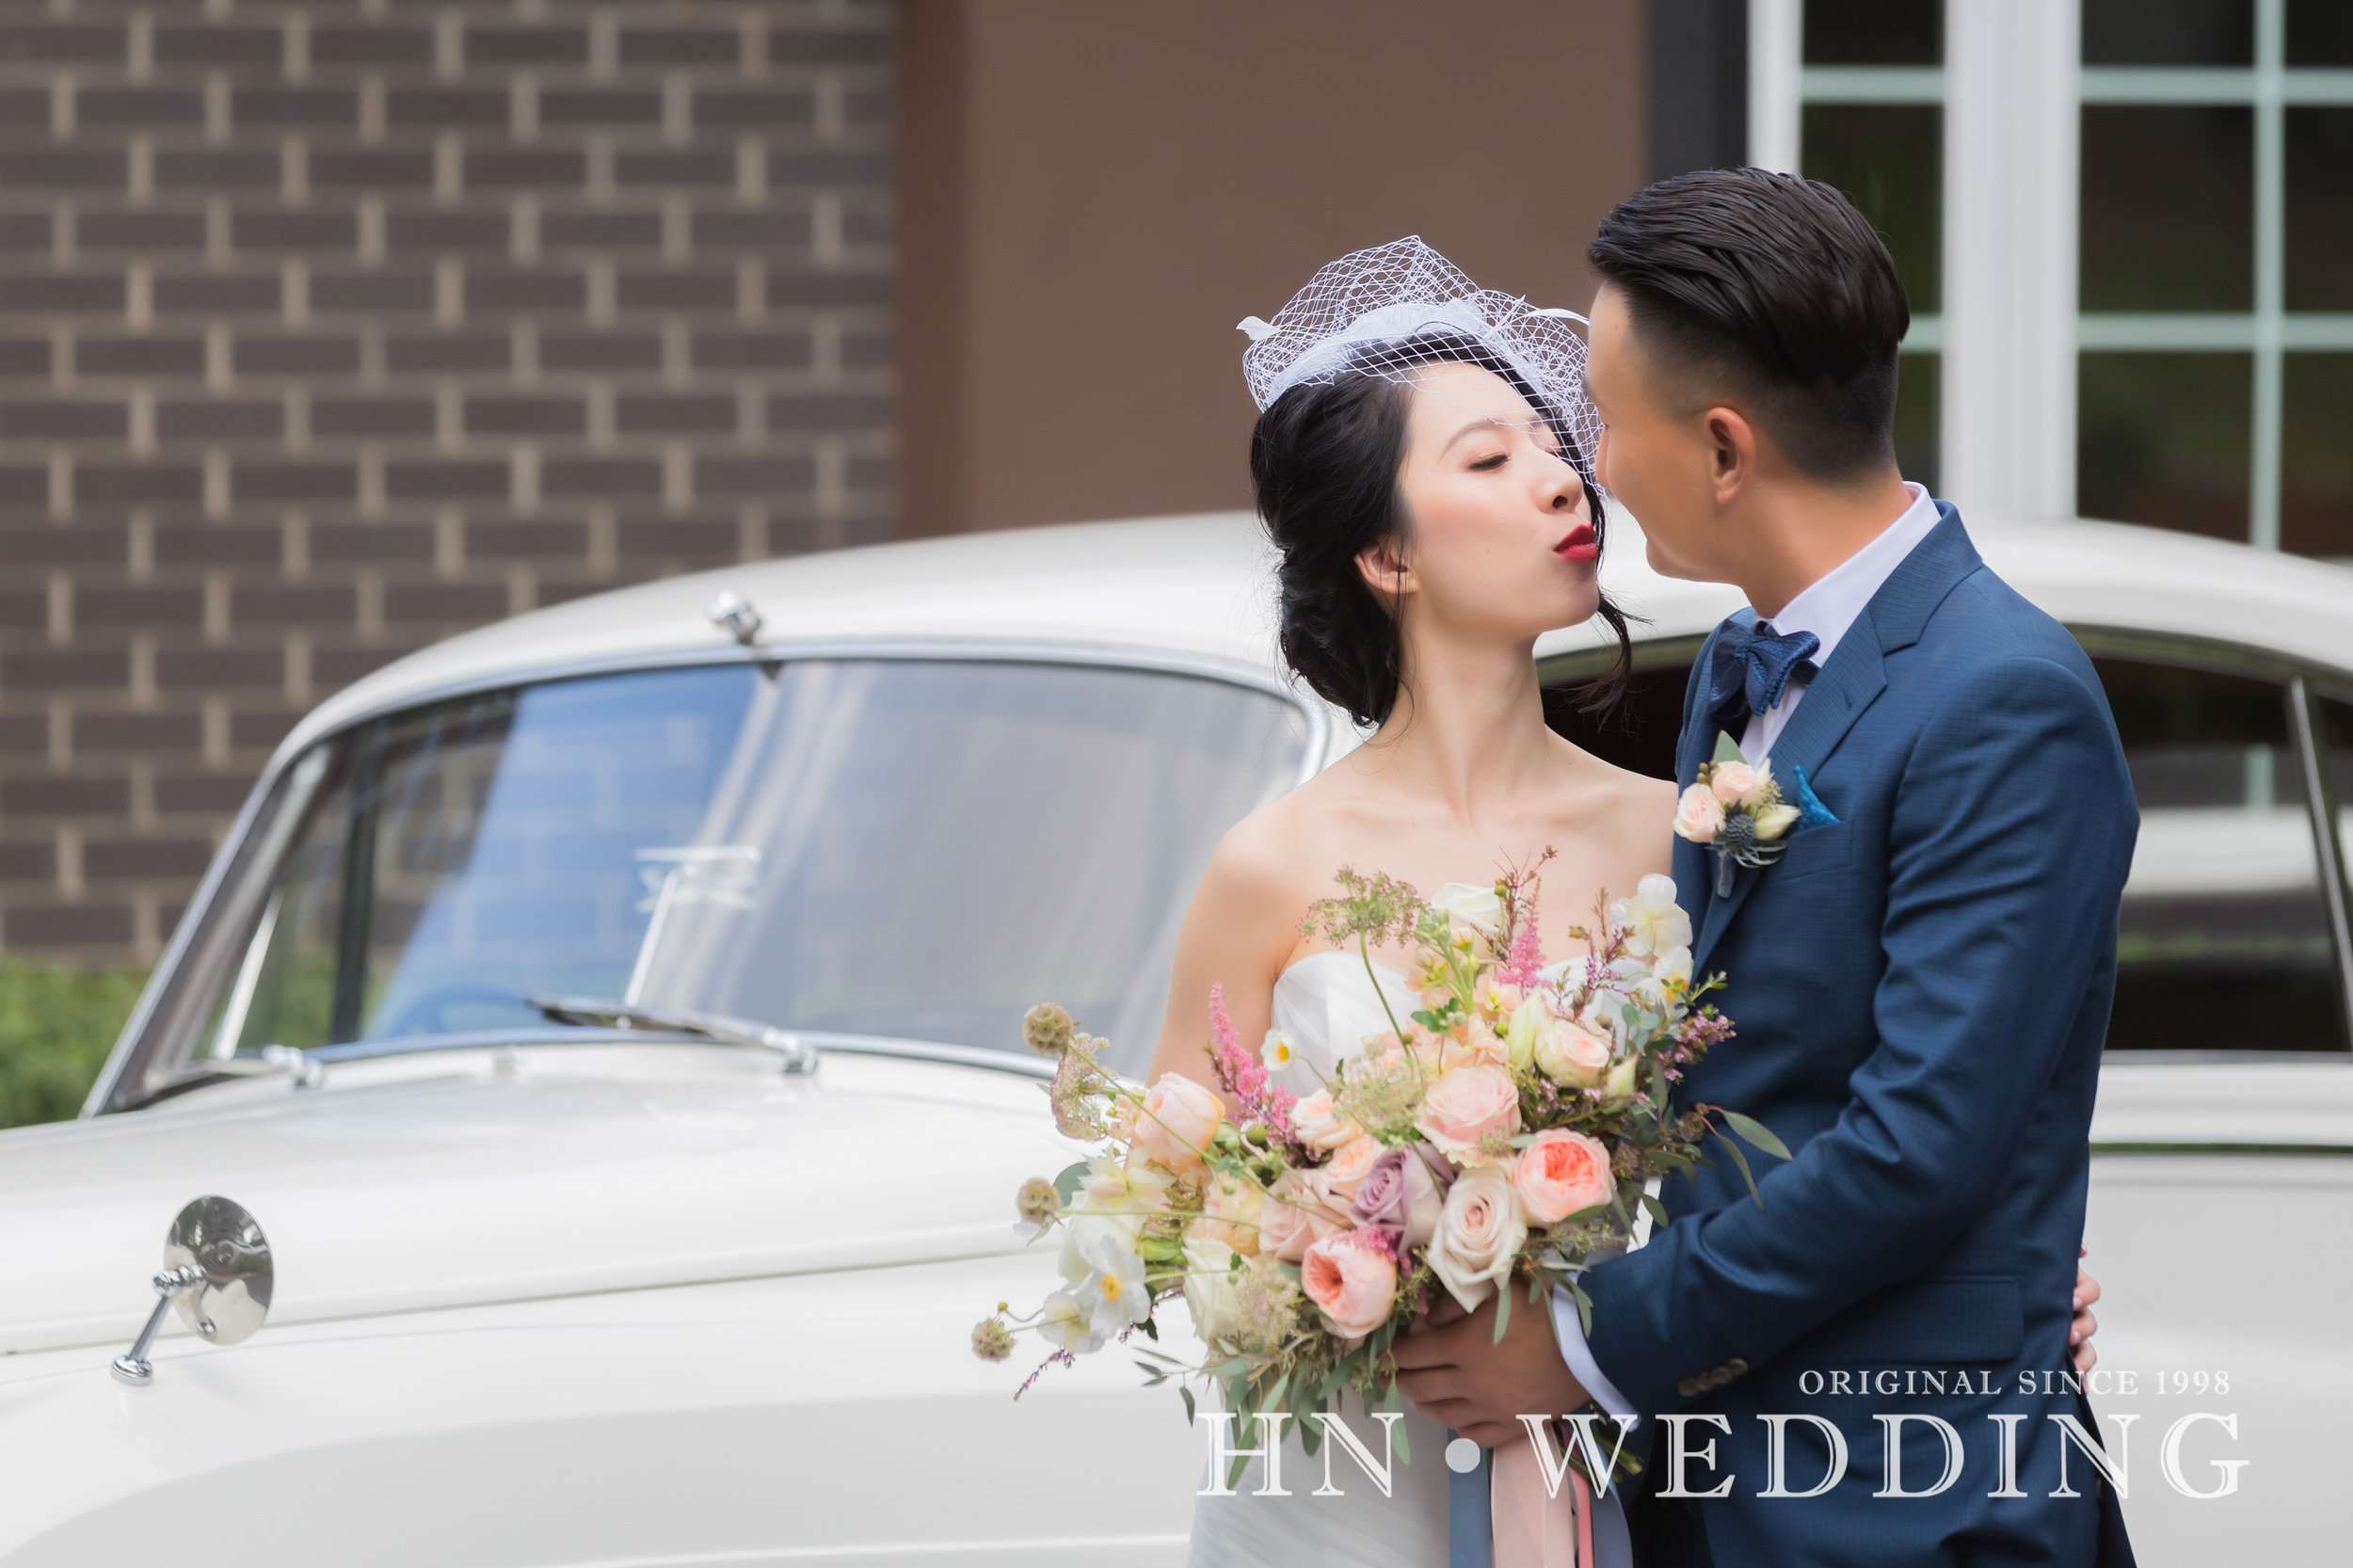 hnweddingweddingday20180830-99.jpg